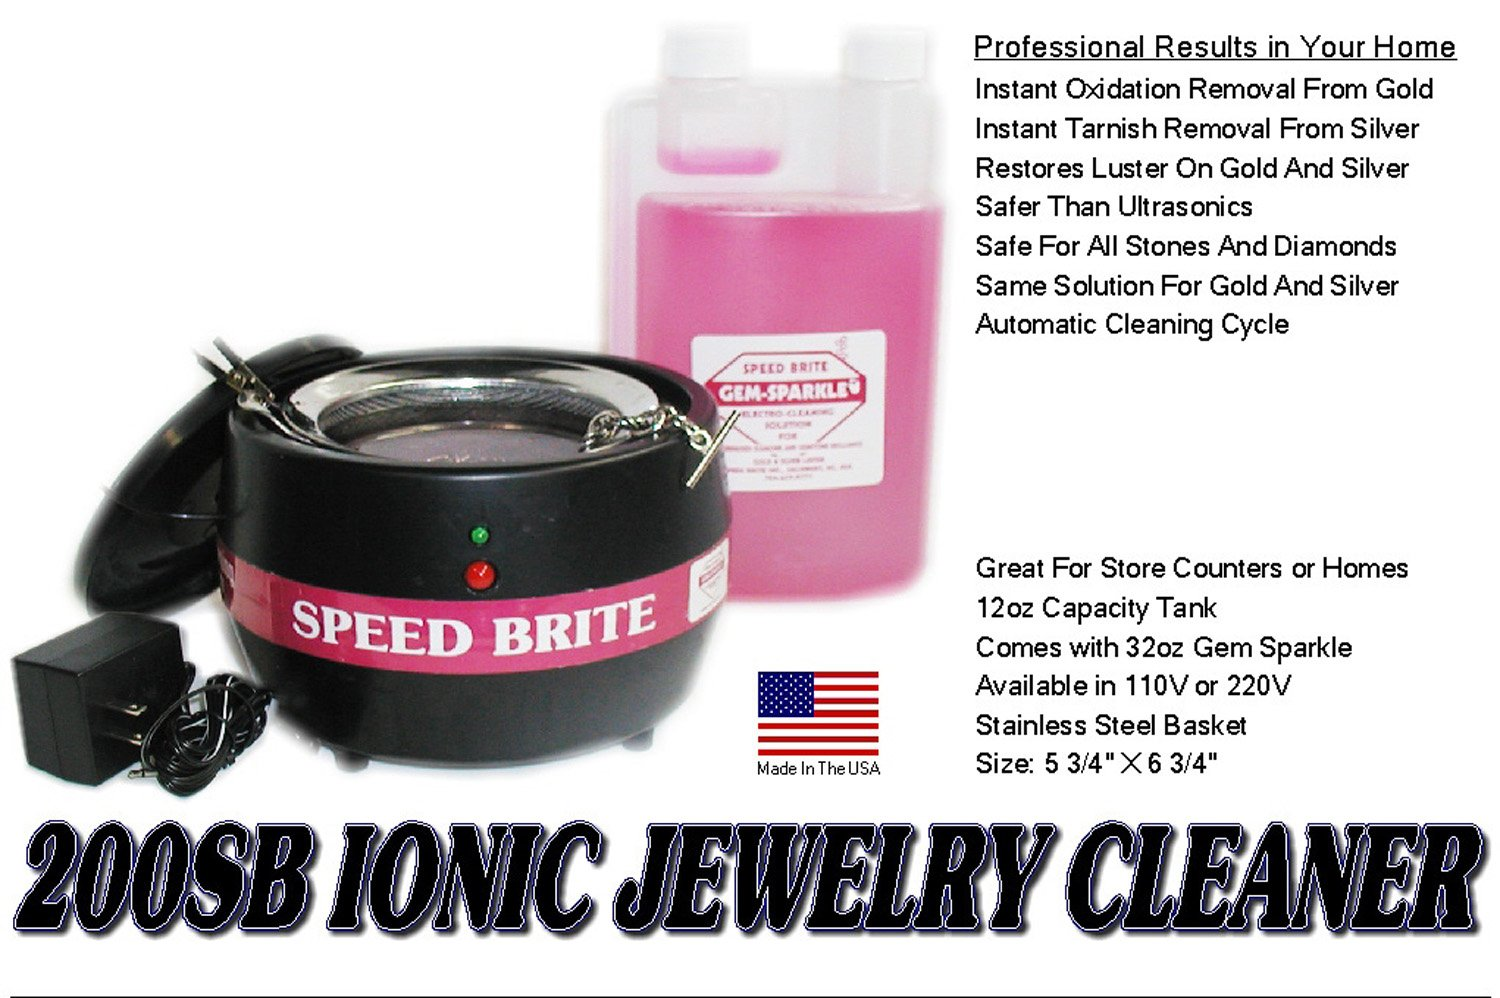 Speed Brite Turbo Ionic Cleaner 200SB